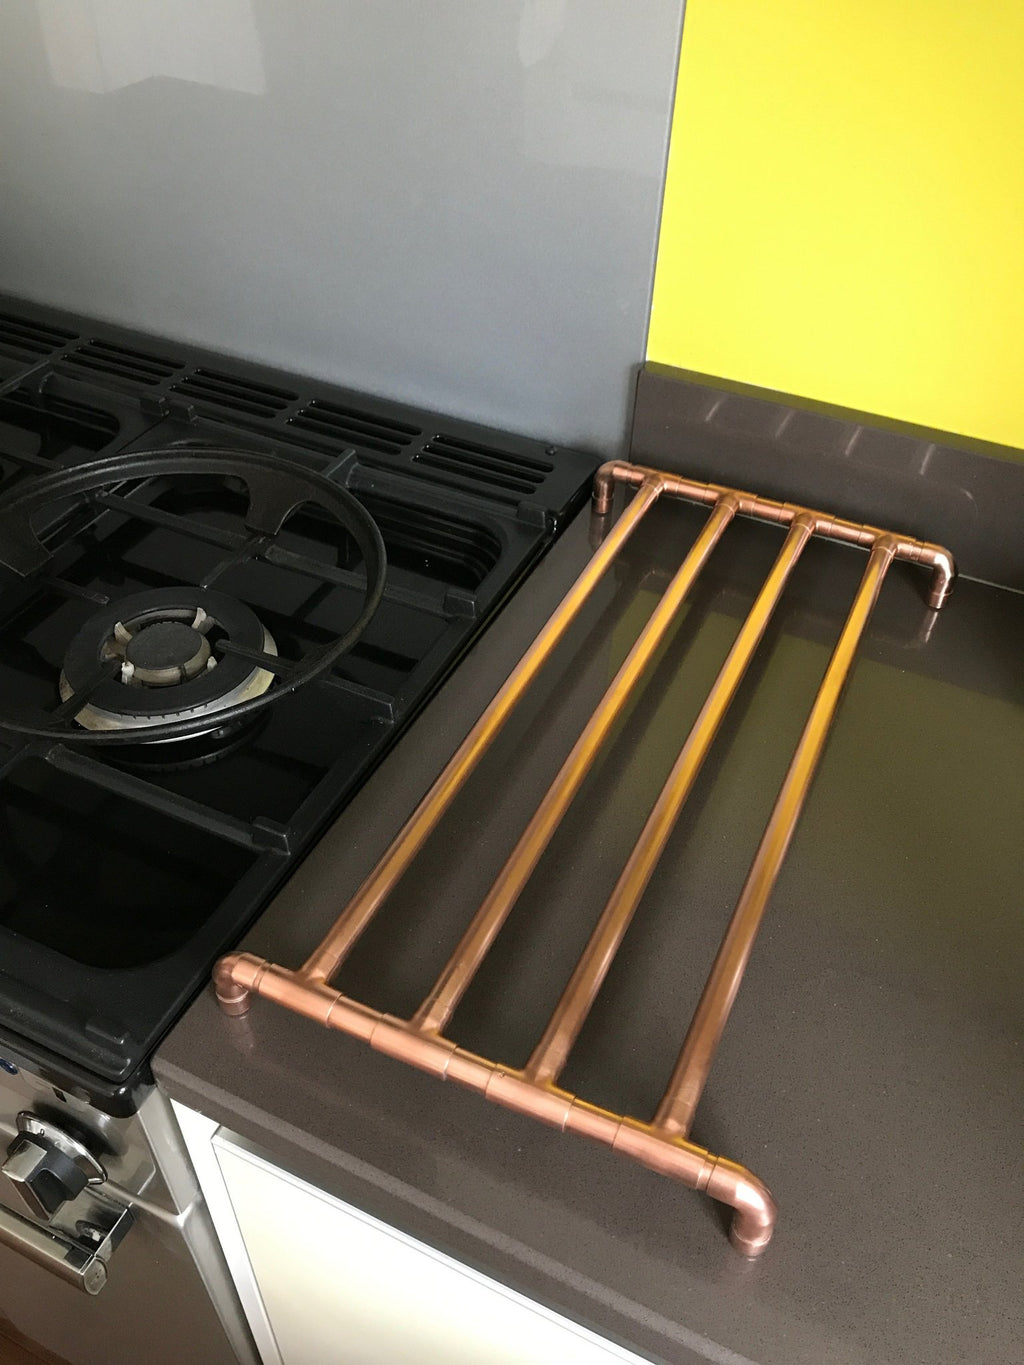 Copper Trivet on a Granite Kitchen Worktop